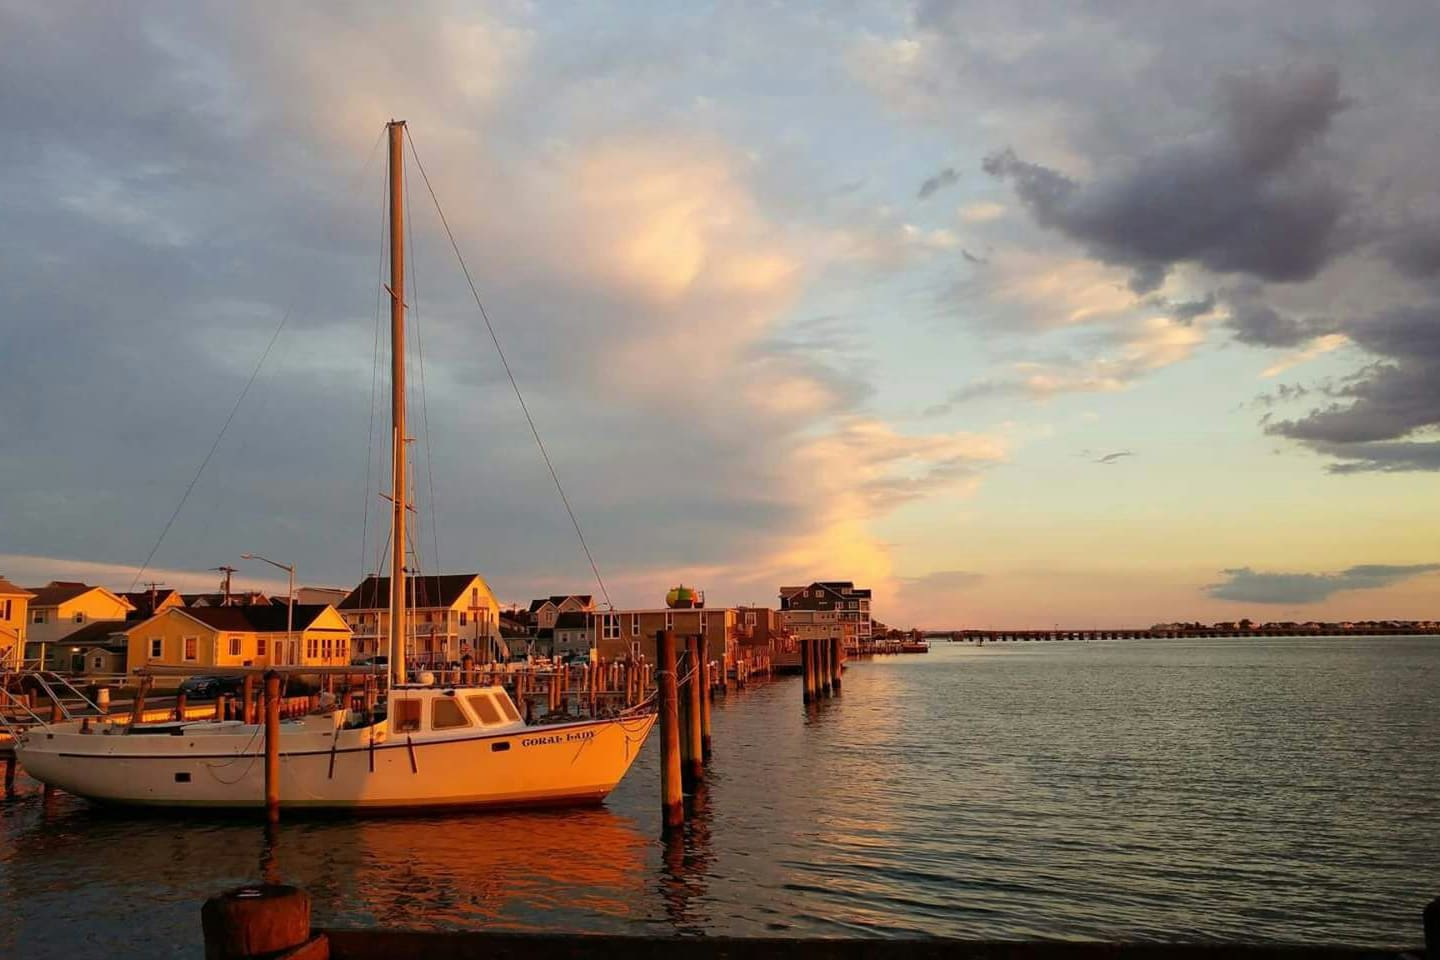 ocean city sunset go to Fish Tails or Mackeys to watch